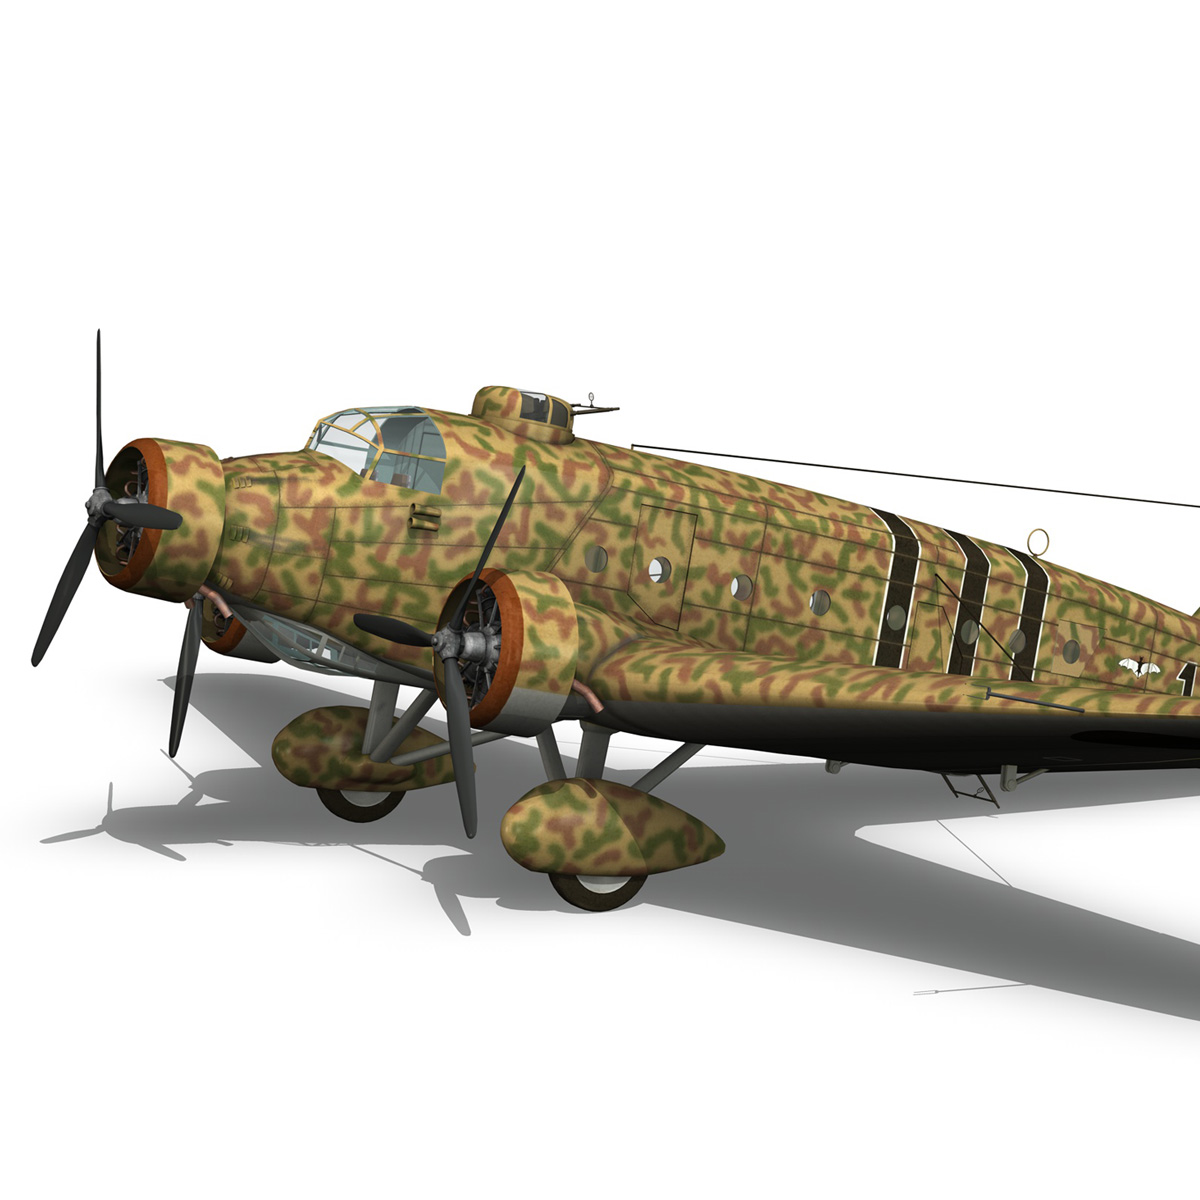 savoia-marchetti sm.81 – spanish civil war 3d model 3ds fbx c4d lwo obj 274152